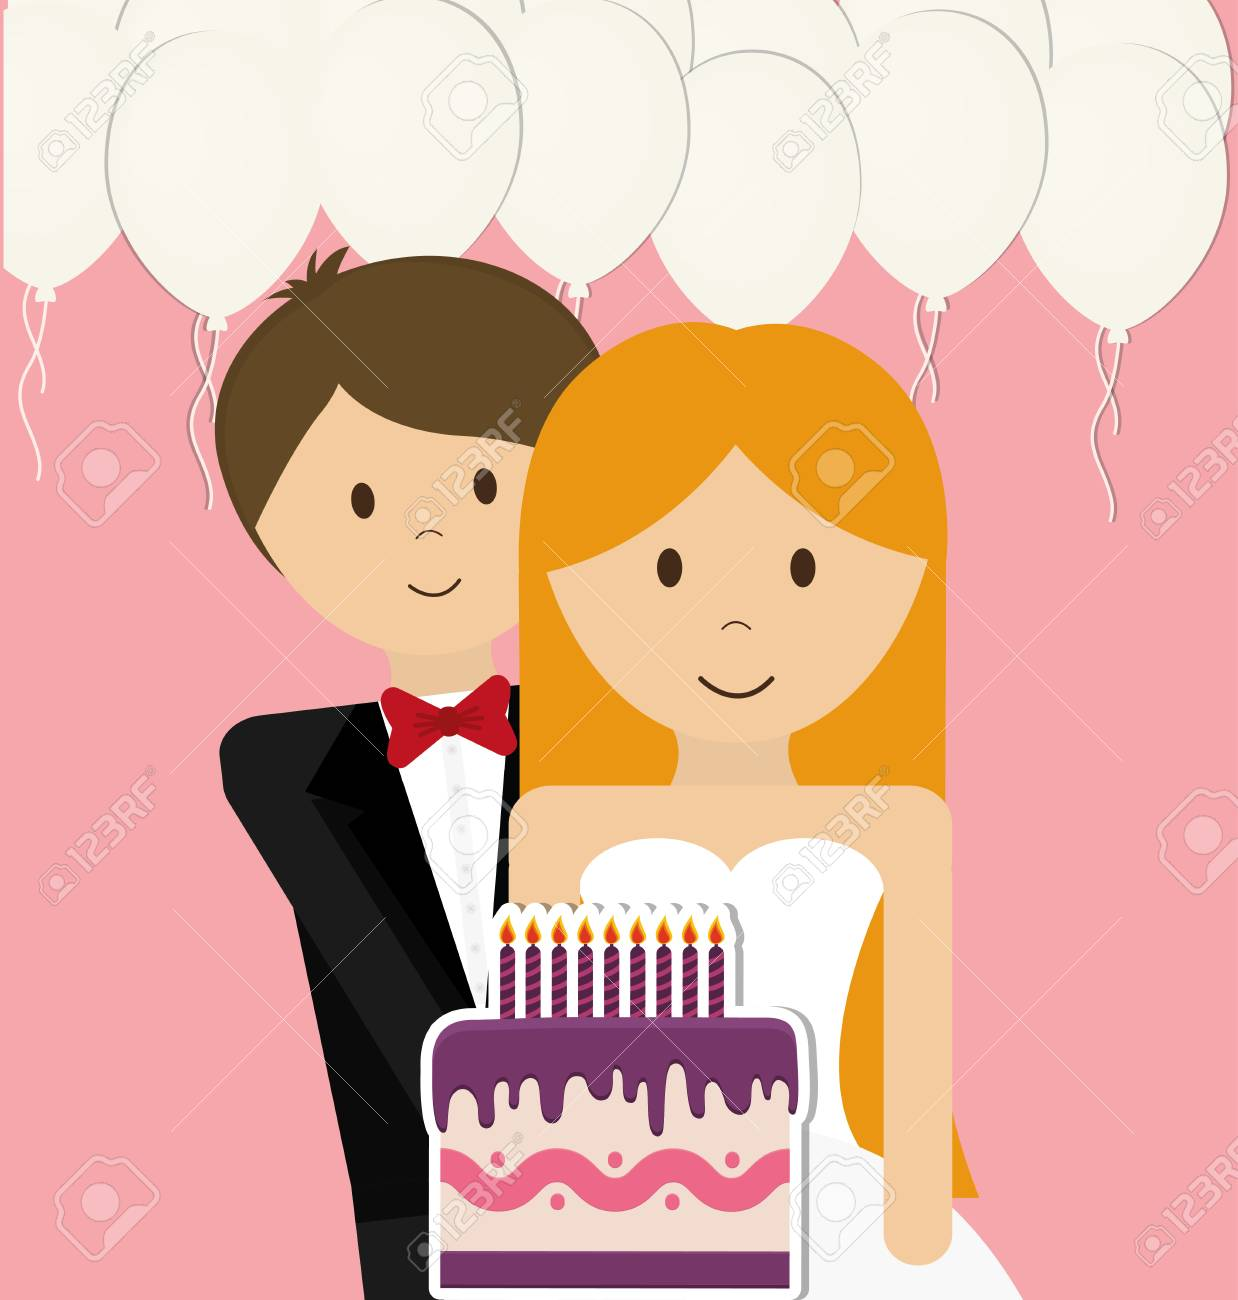 Wedding Couple Concept With Icon Design, Vector Illustration ...